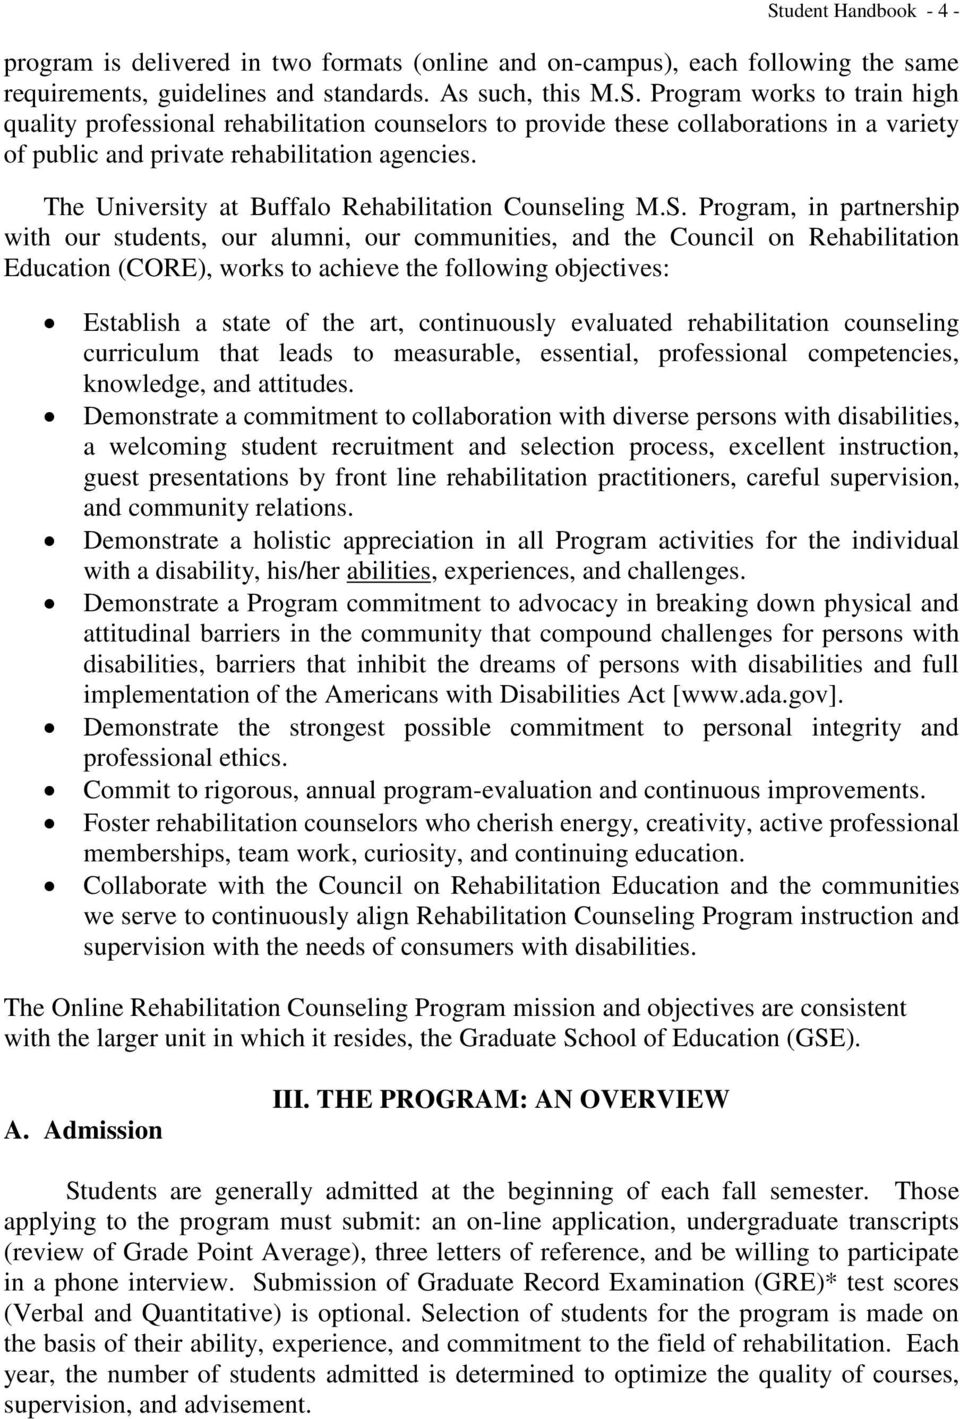 Program, in partnership with our students, our alumni, our communities, and the Council on Rehabilitation Education (CORE), works to achieve the following objectives: Establish a state of the art,